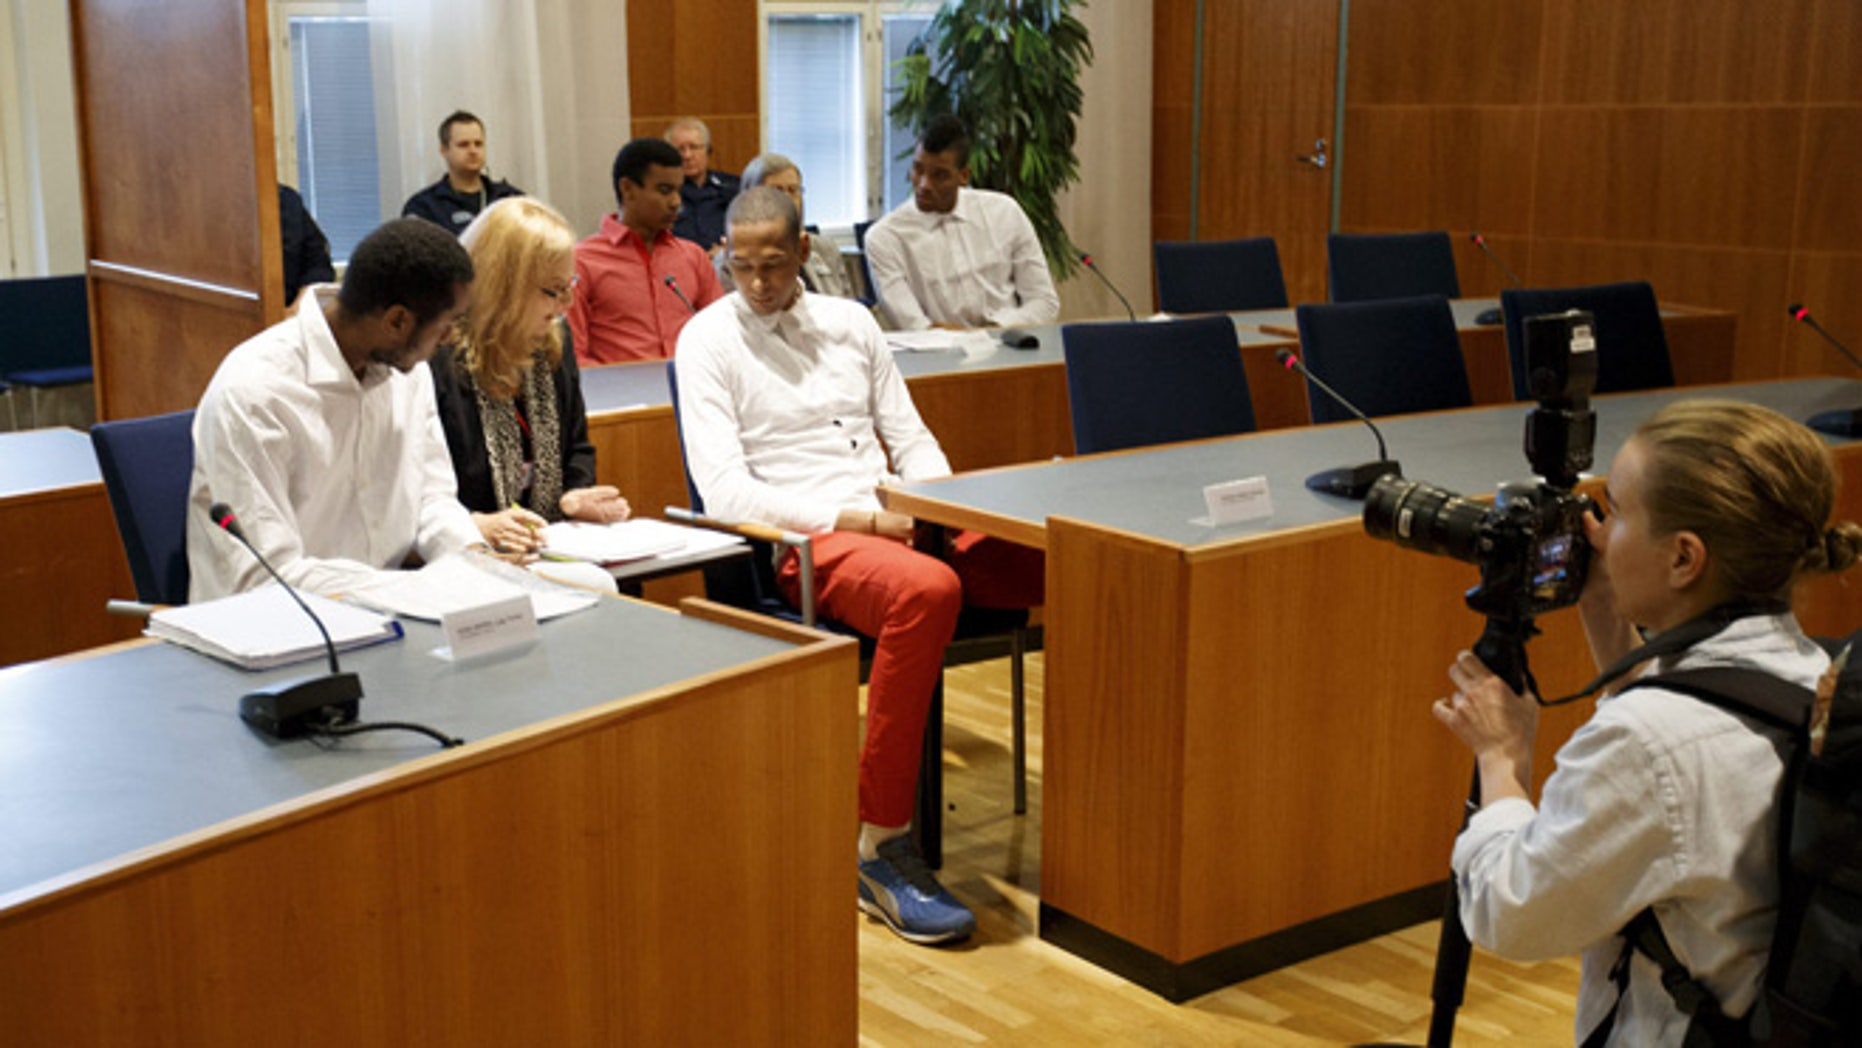 Players of Cuba's national volleyball team accused of rape appear before the court of Tampere, Finland, on August 29, 2016.